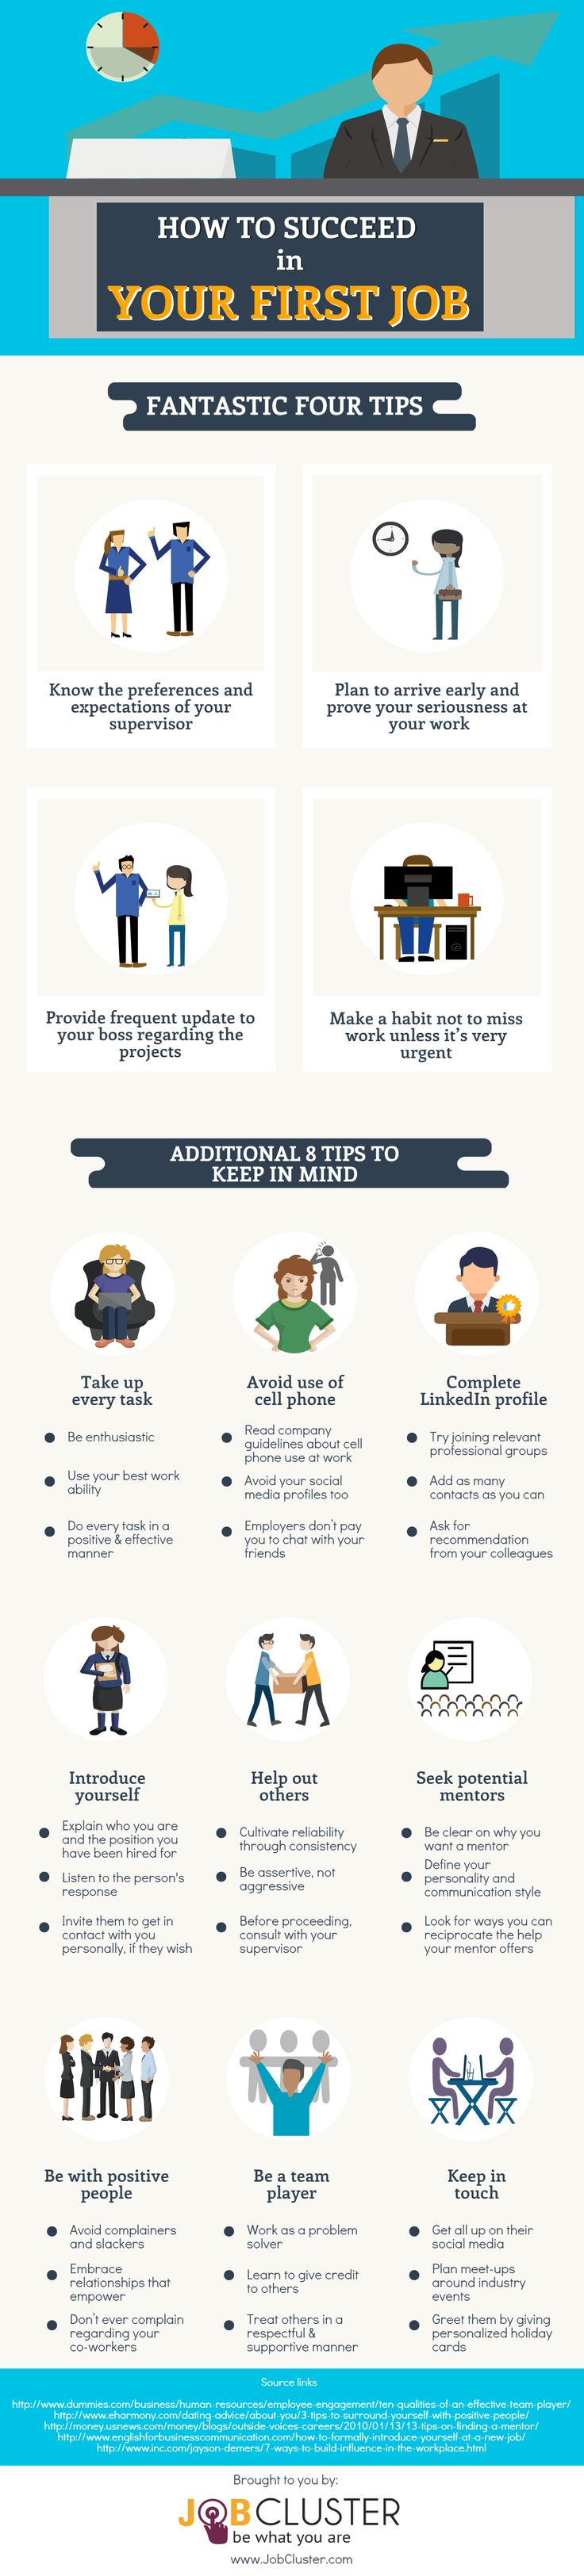 14 Tips For Your First Job  Infographic